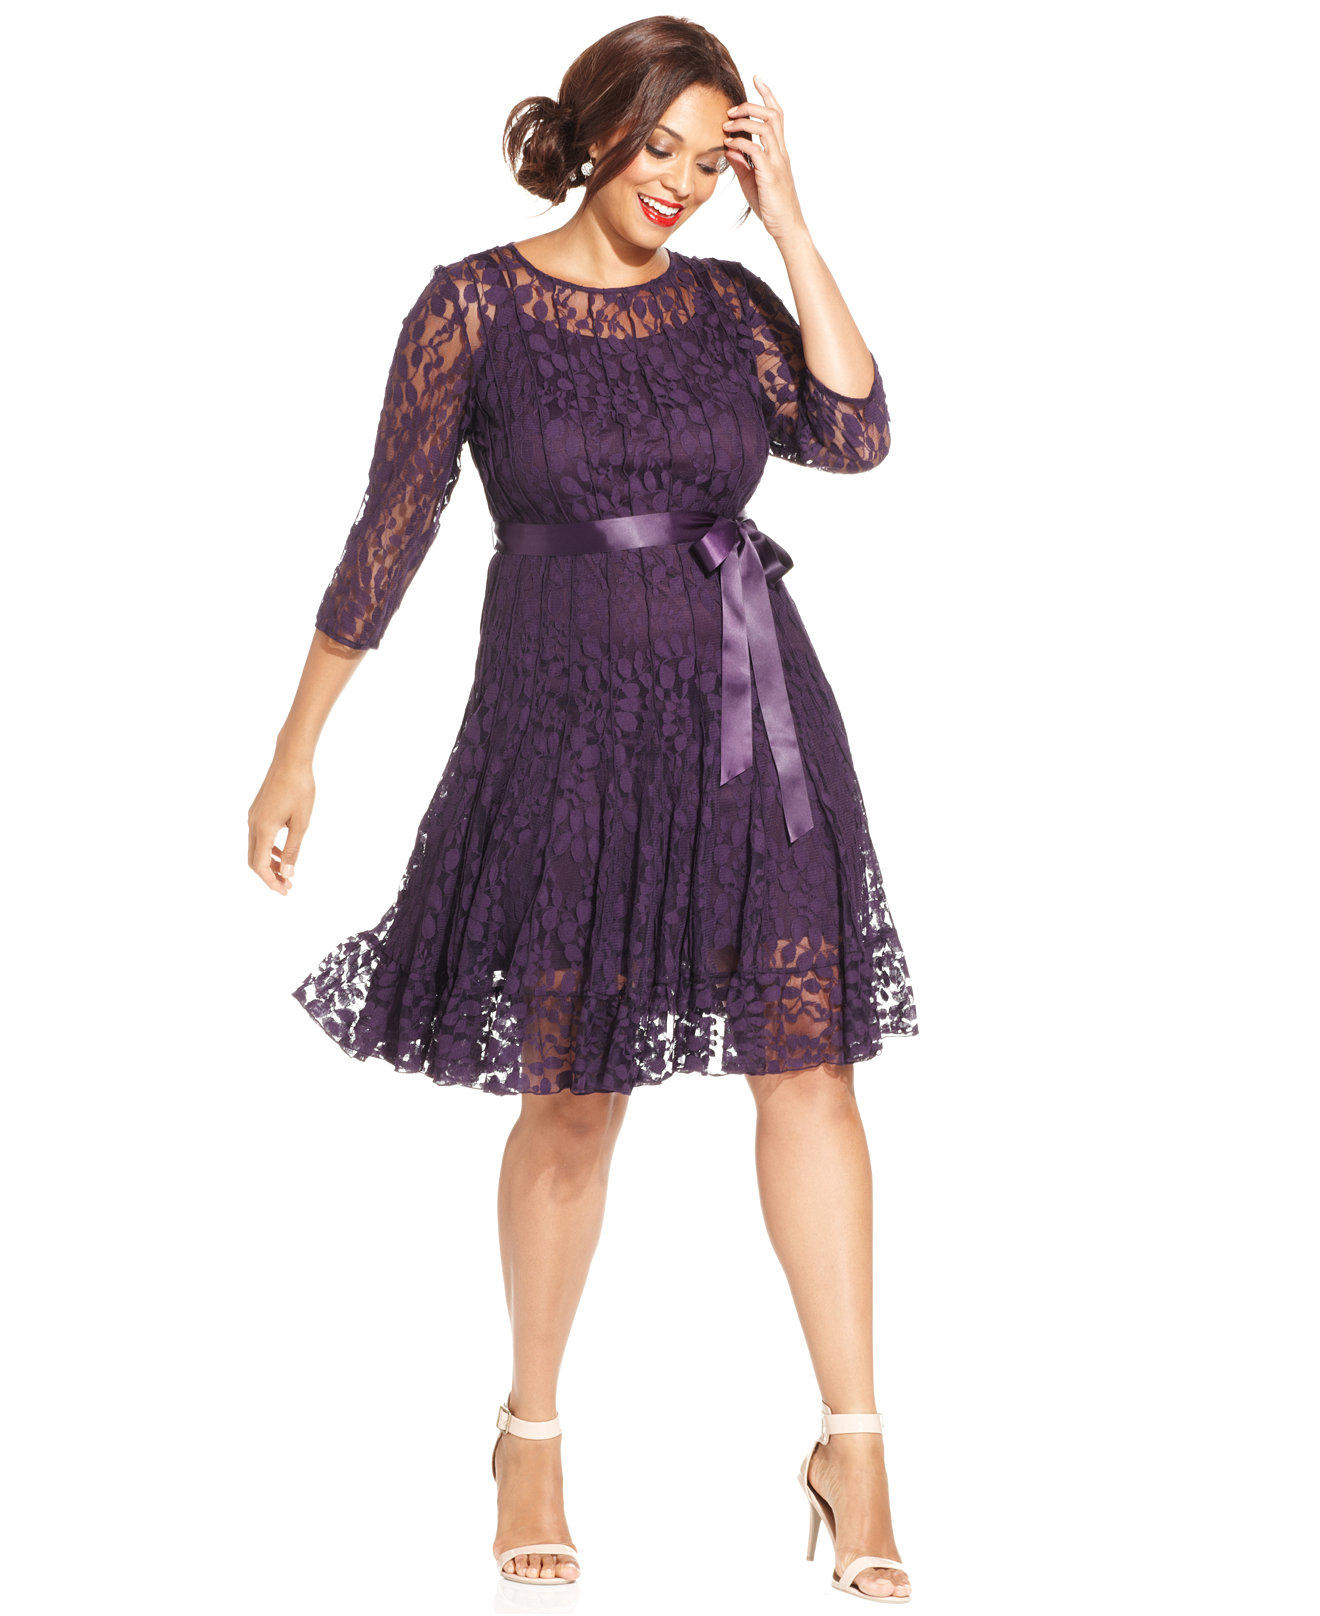 Msk plus size illusion floral lace dress from macys obsessed for Macy s wedding dresses plus size